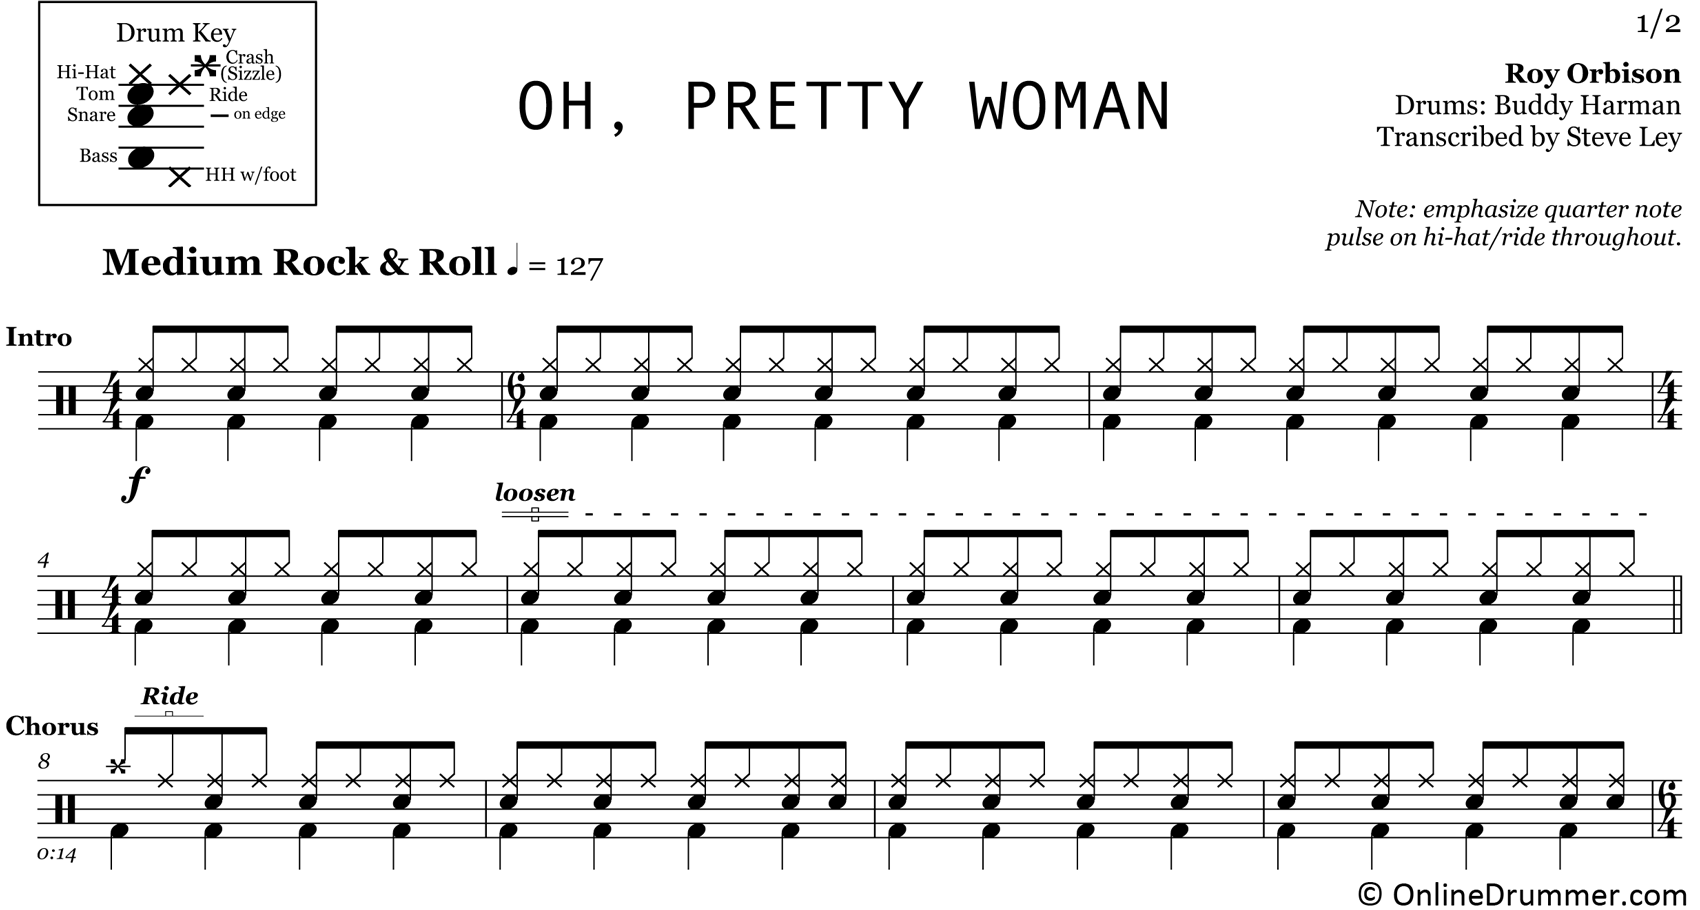 Oh, Pretty Woman - Roy Orbison - Drum Sheet Music